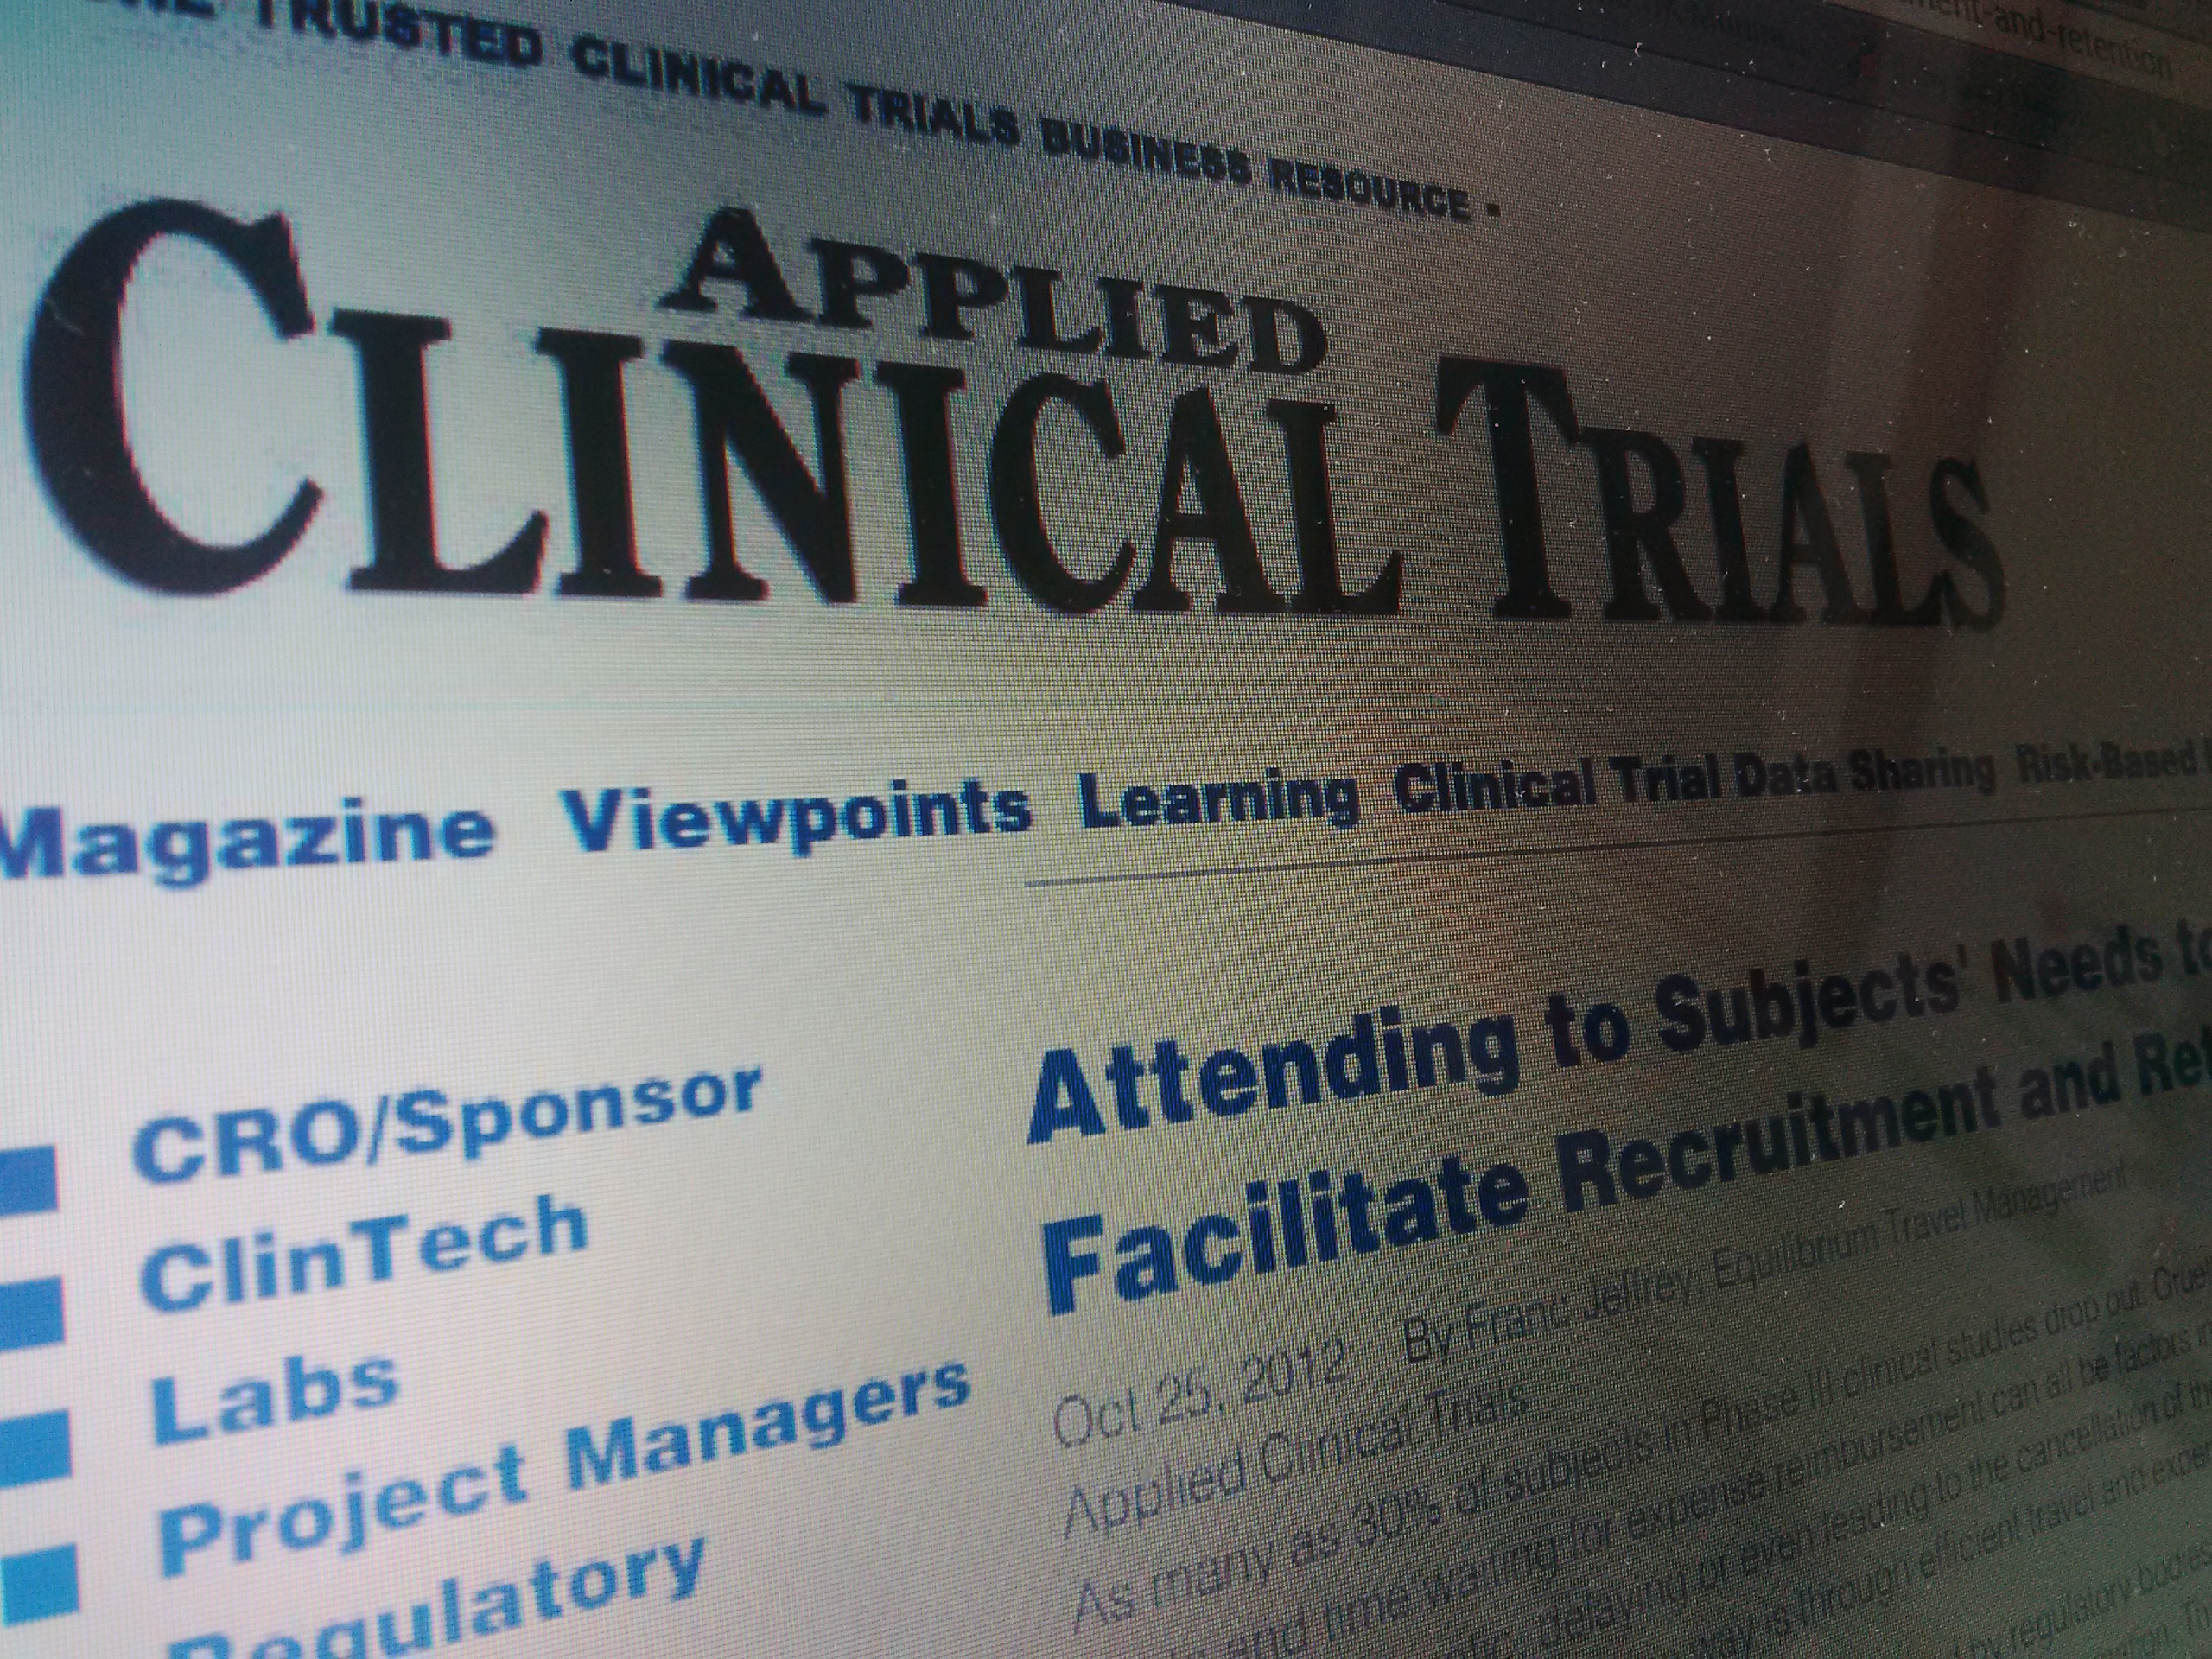 Applied Clinical Trial Magazine - Franc Jeffrey White Paper